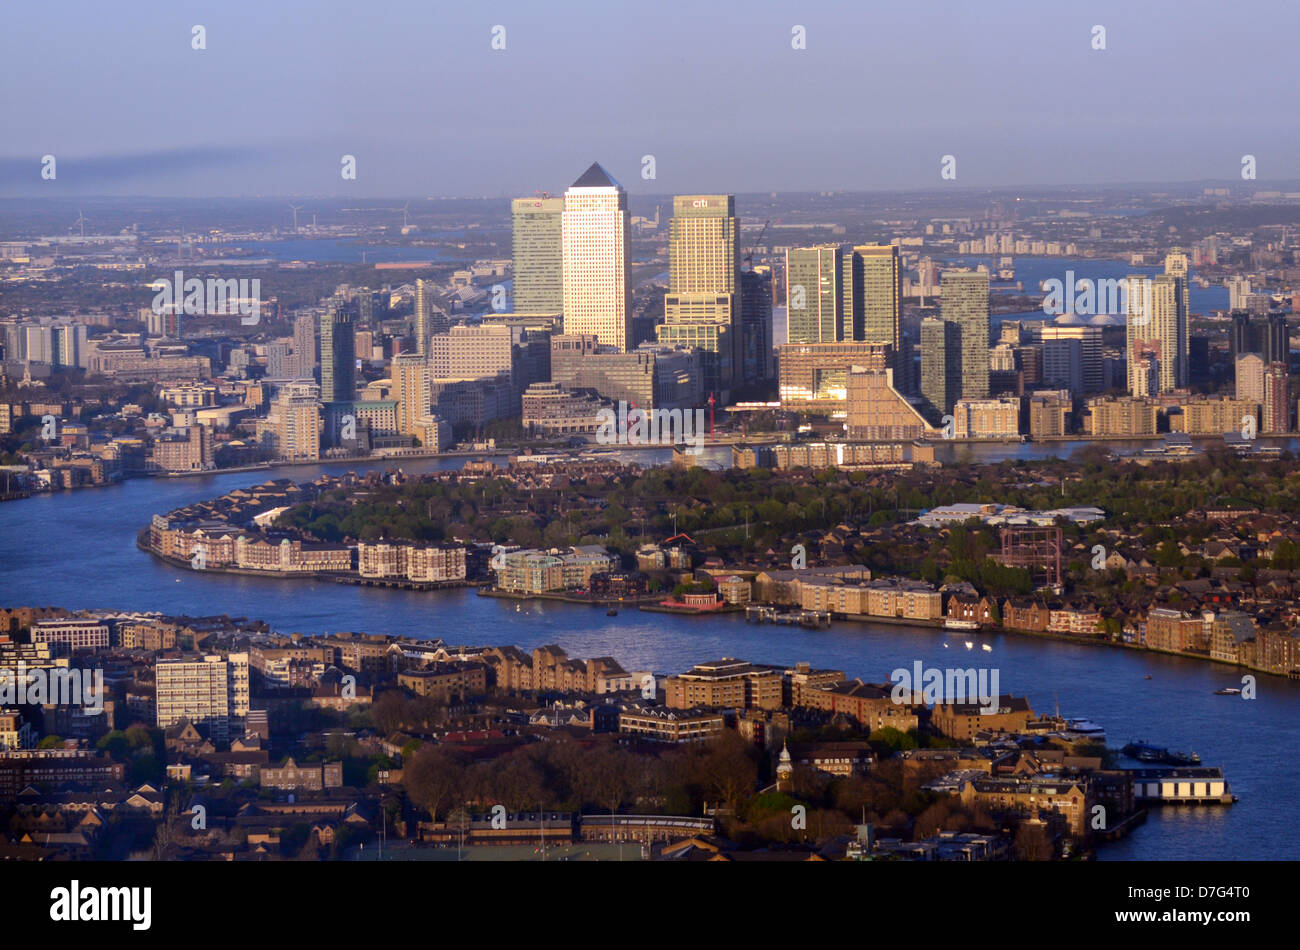 View towards East London, Docklands and Canary Wharf from The Shard, London - Stock Image